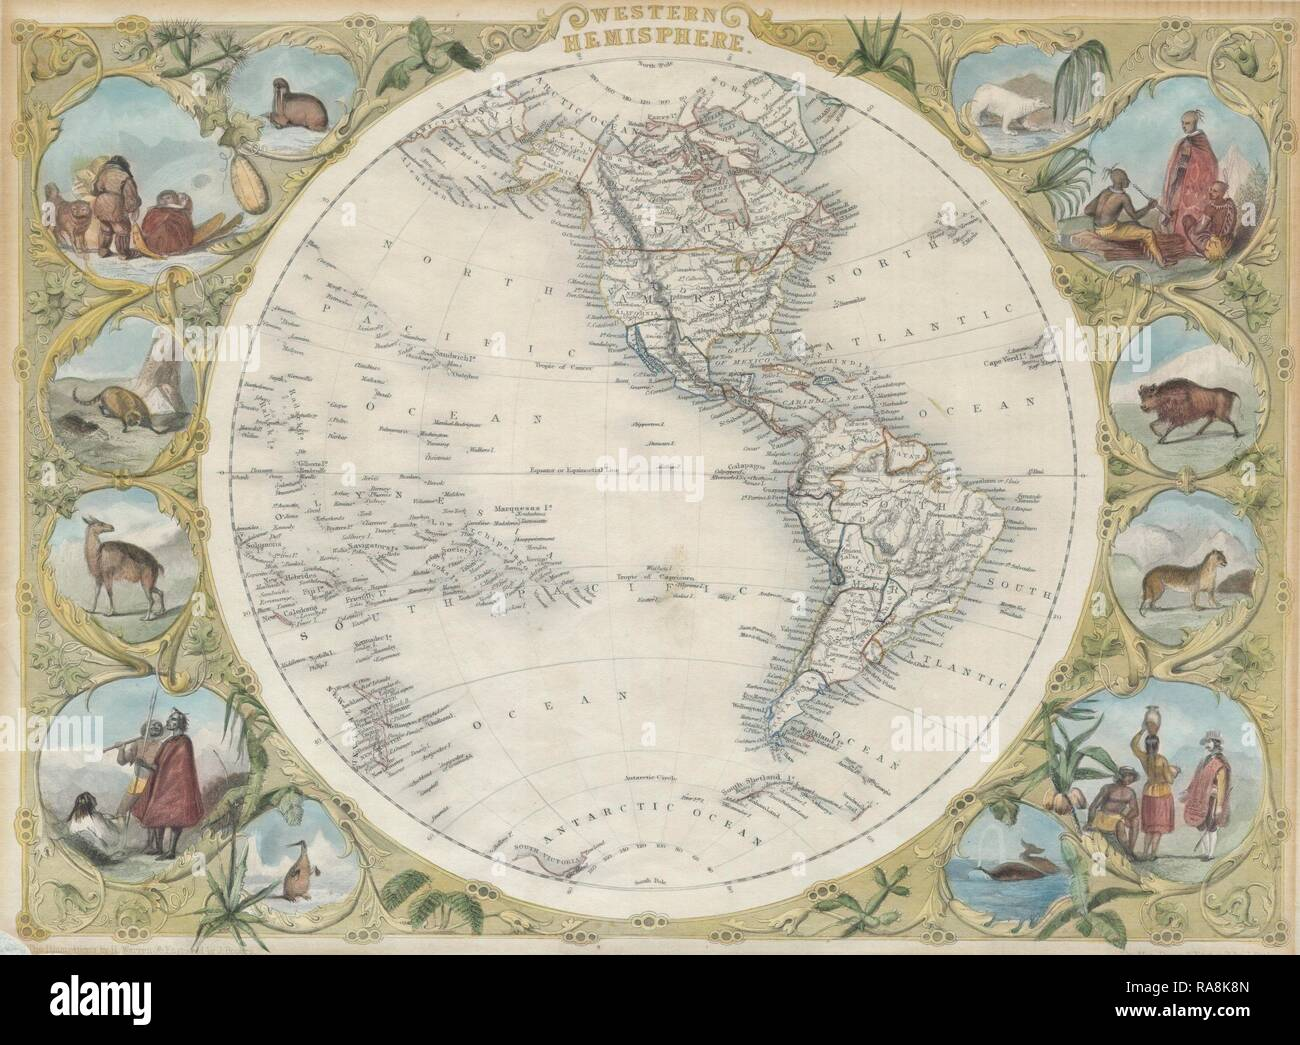 1850, Tallis Map of the Western Hemisphere. Reimagined by Gibon. Classic art with a modern twist reimagined - Stock Image